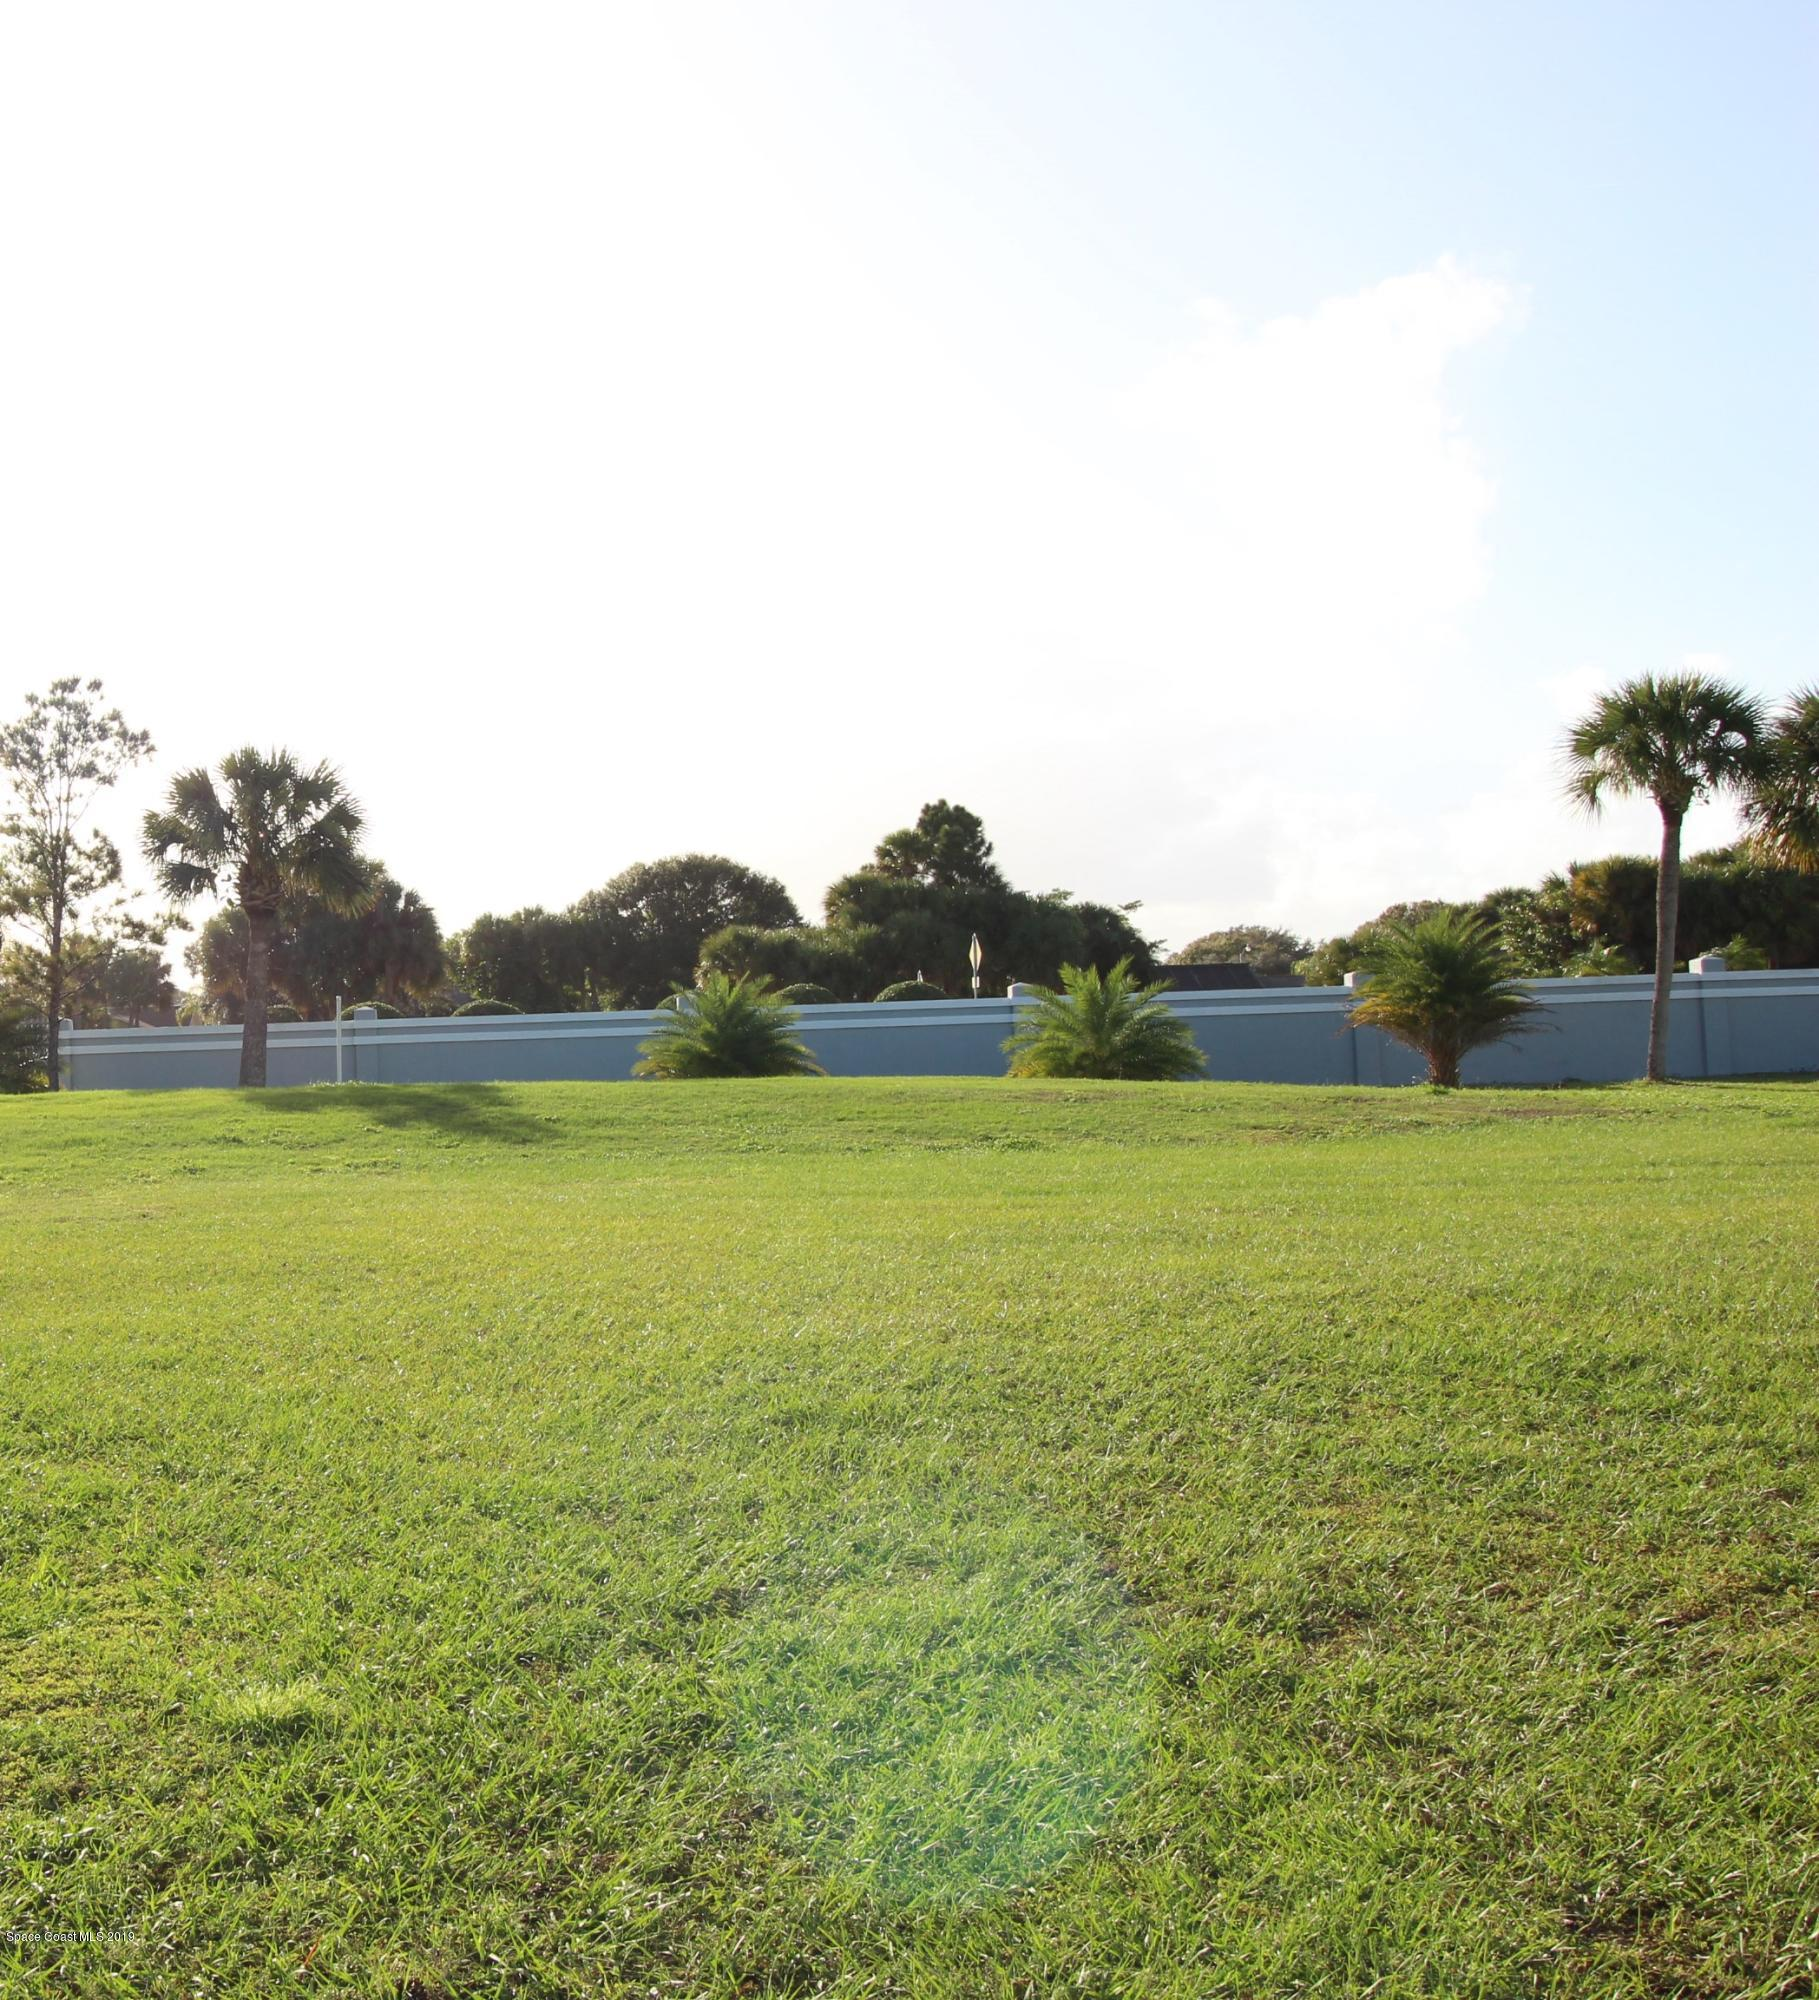 1896 Freedom Drive, Melbourne, FL 32940 - Melbourne, FL real estate listing